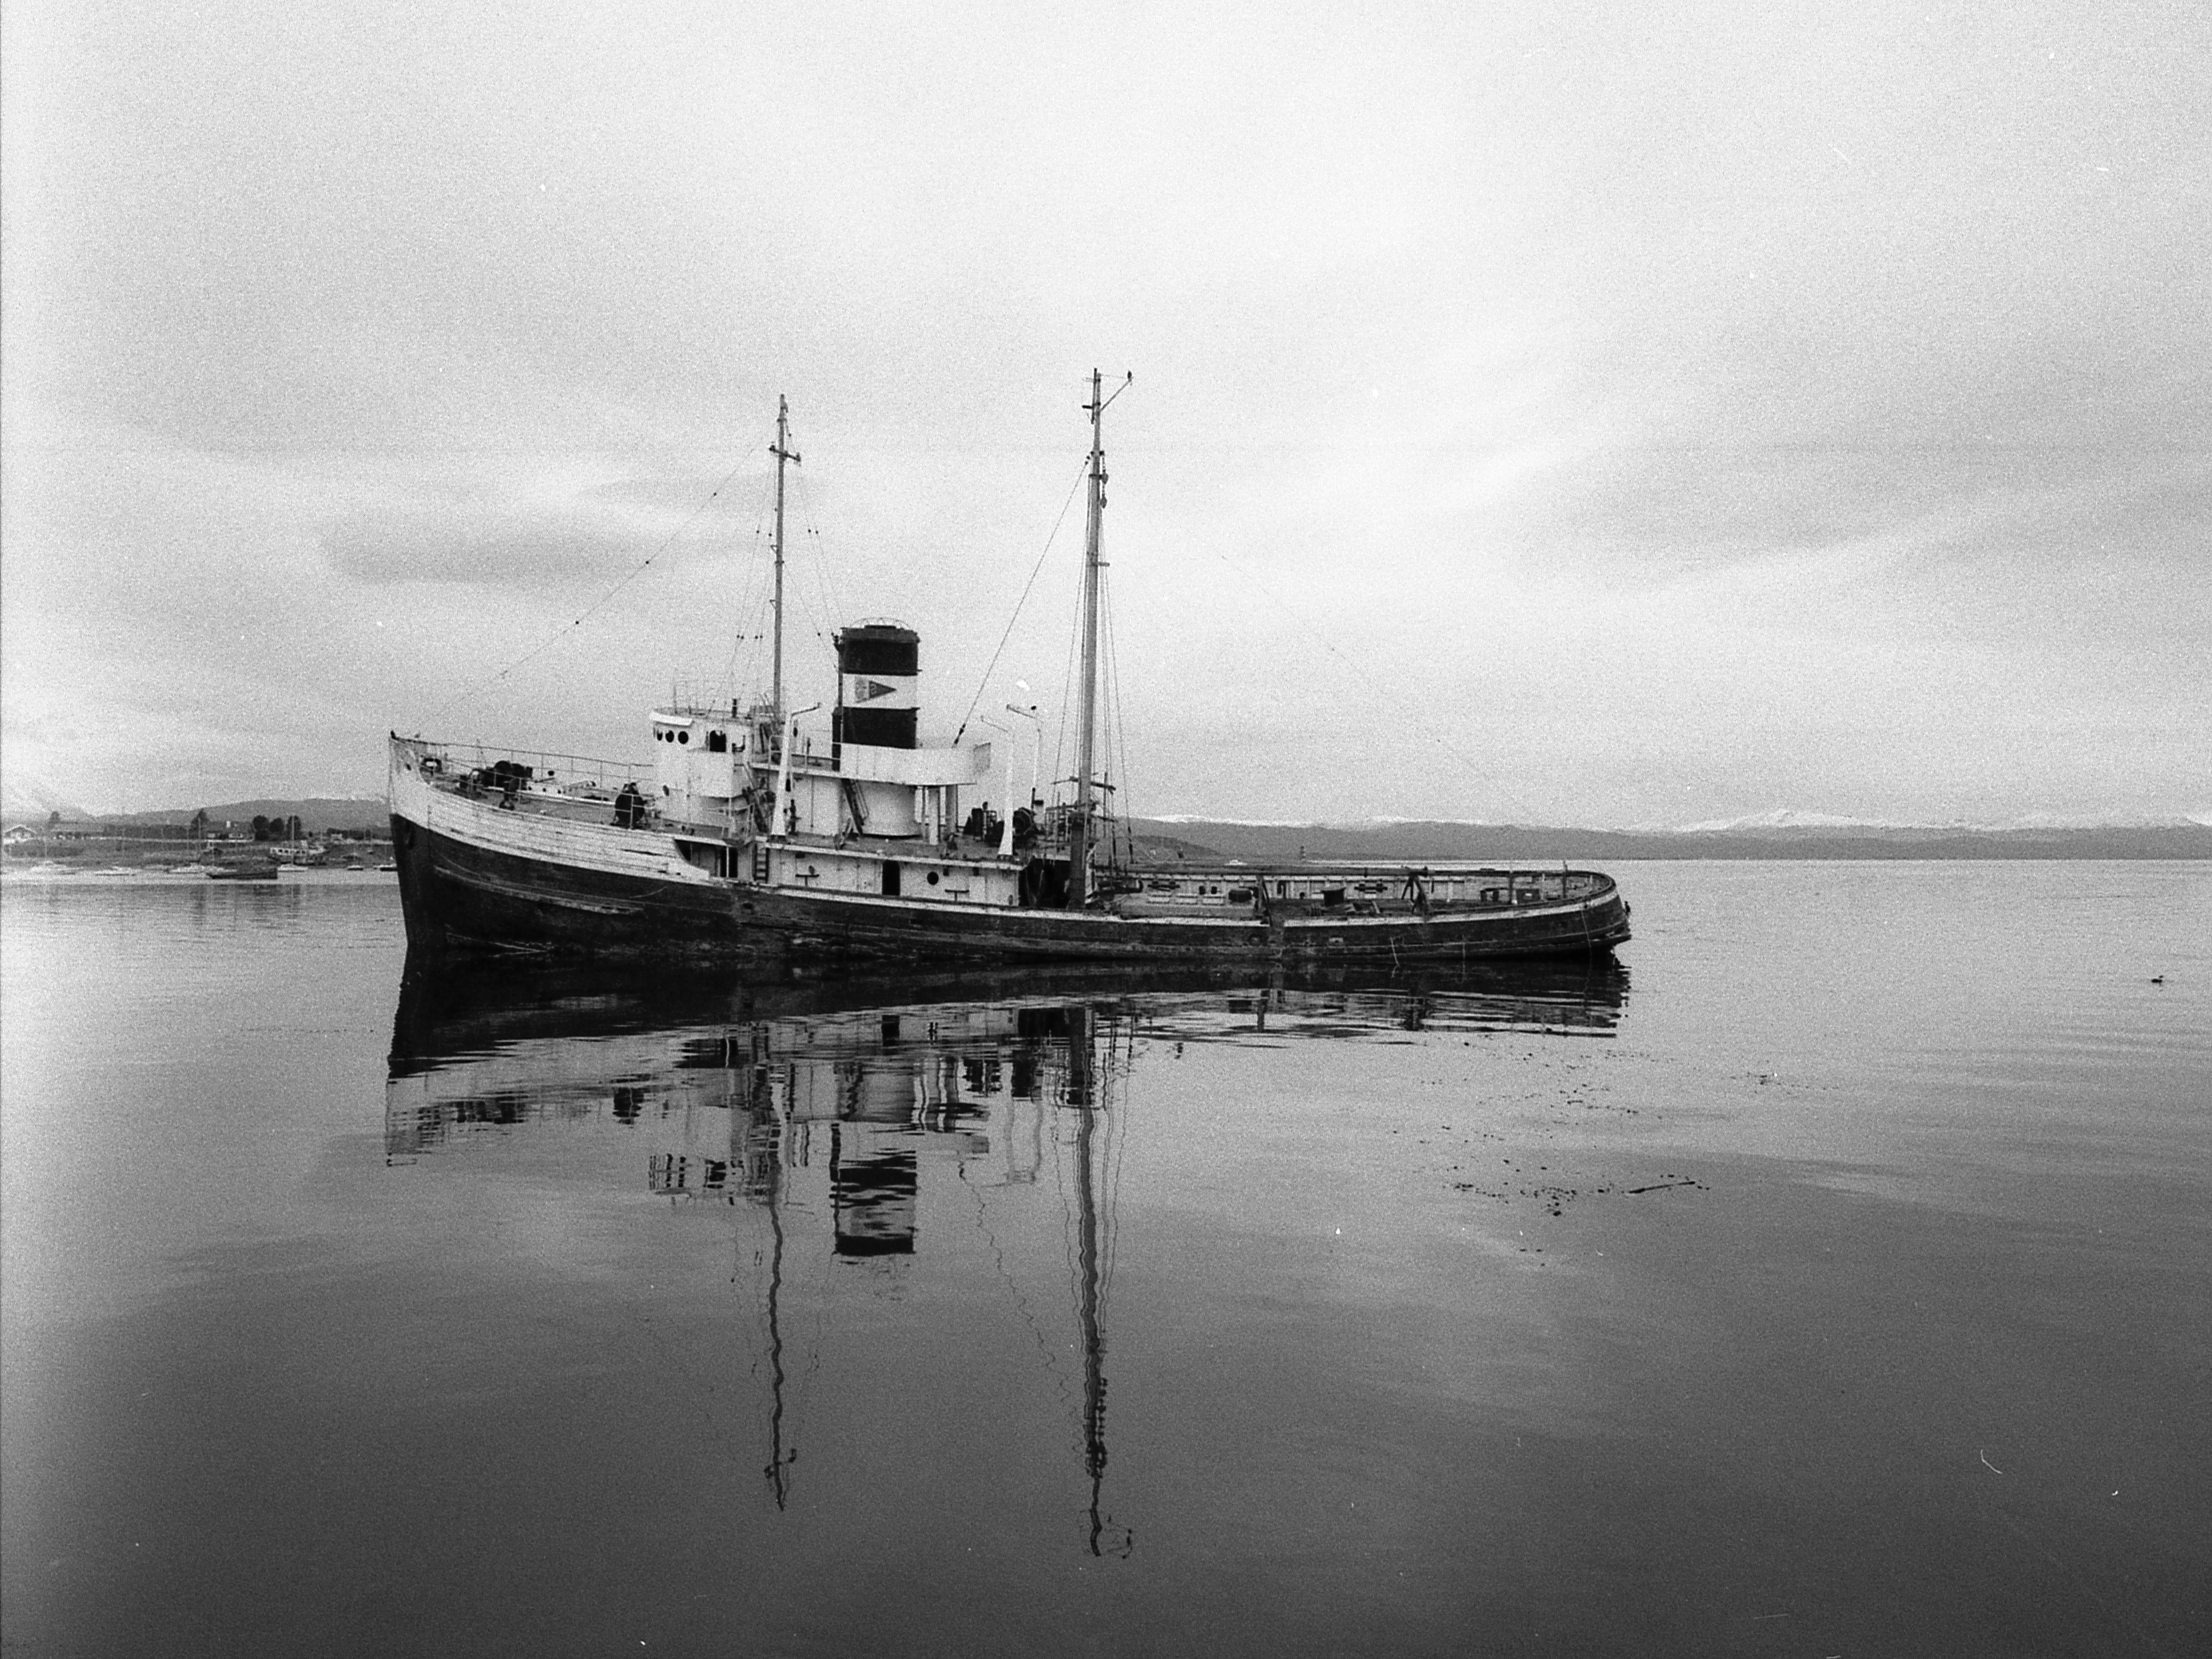 grayscale photo of fishing vessel on body of water